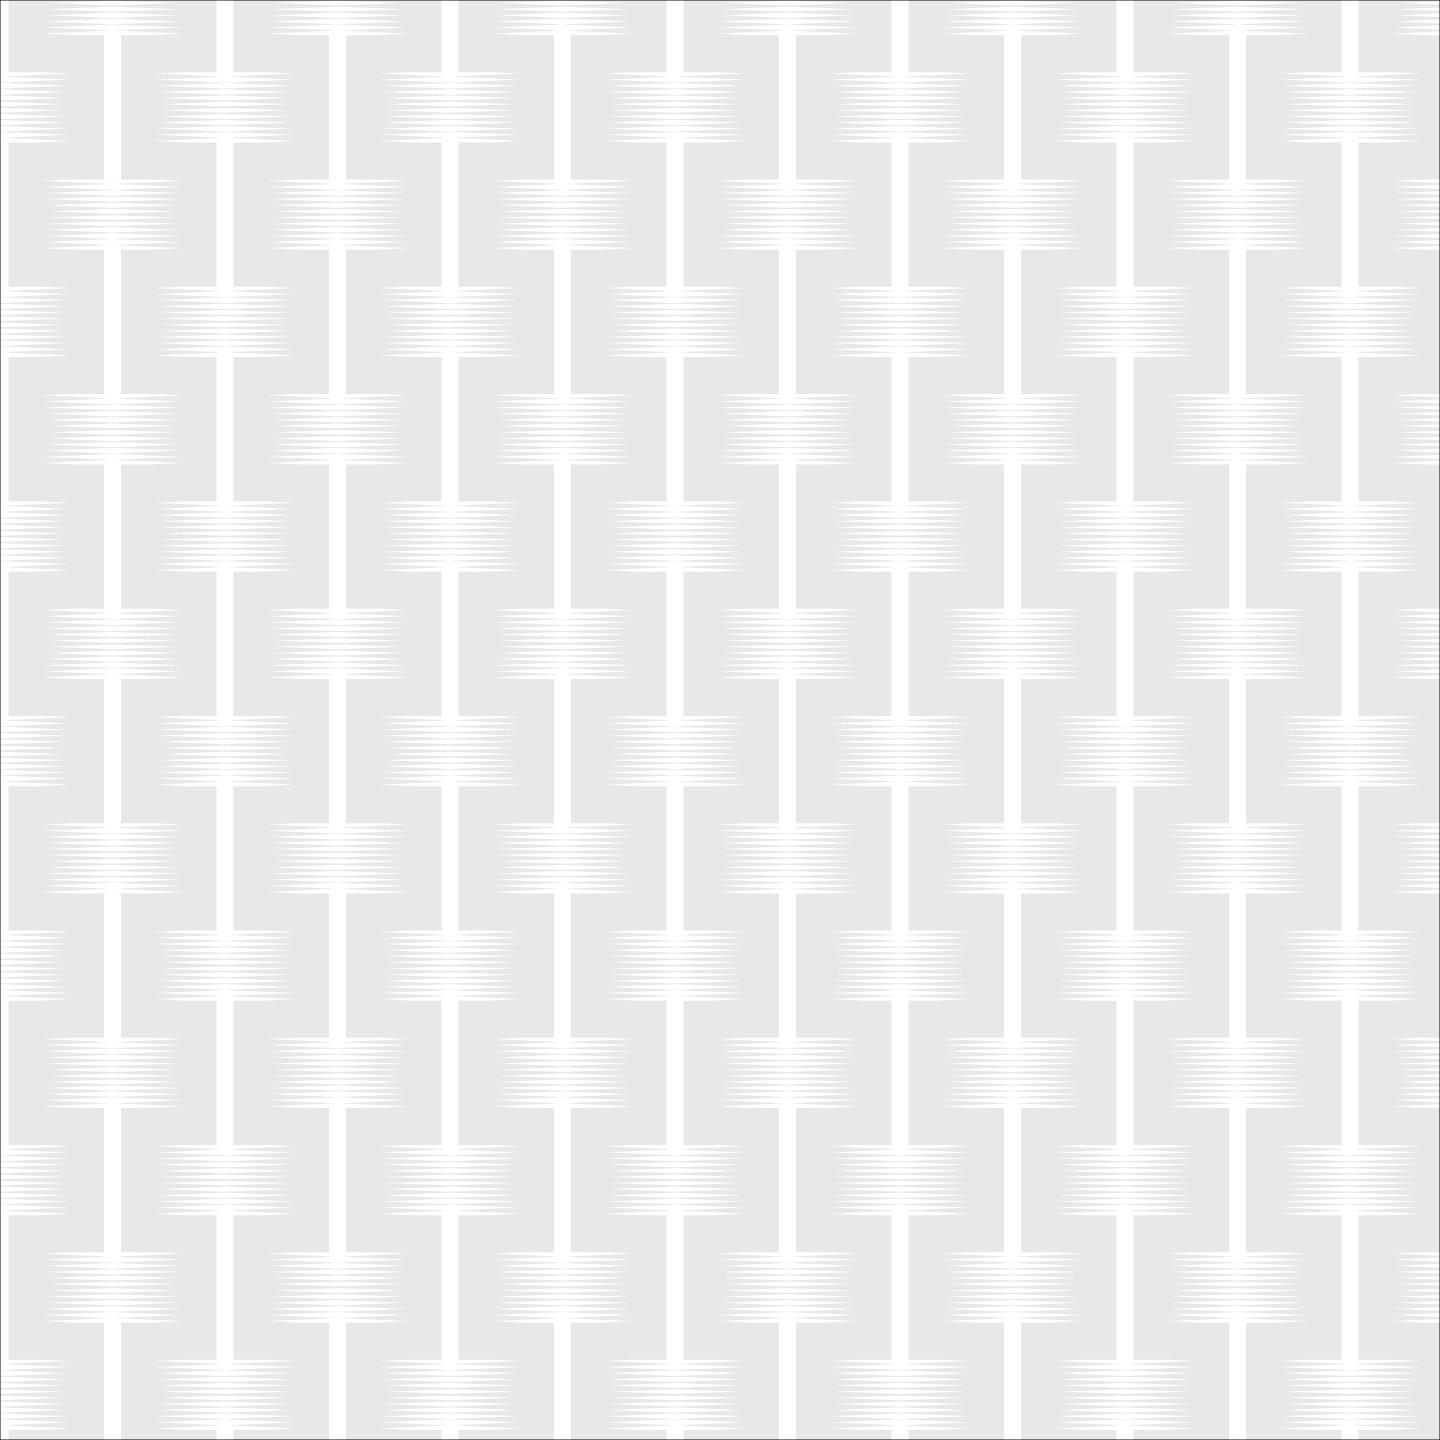 Toothed-Pattern.jpg